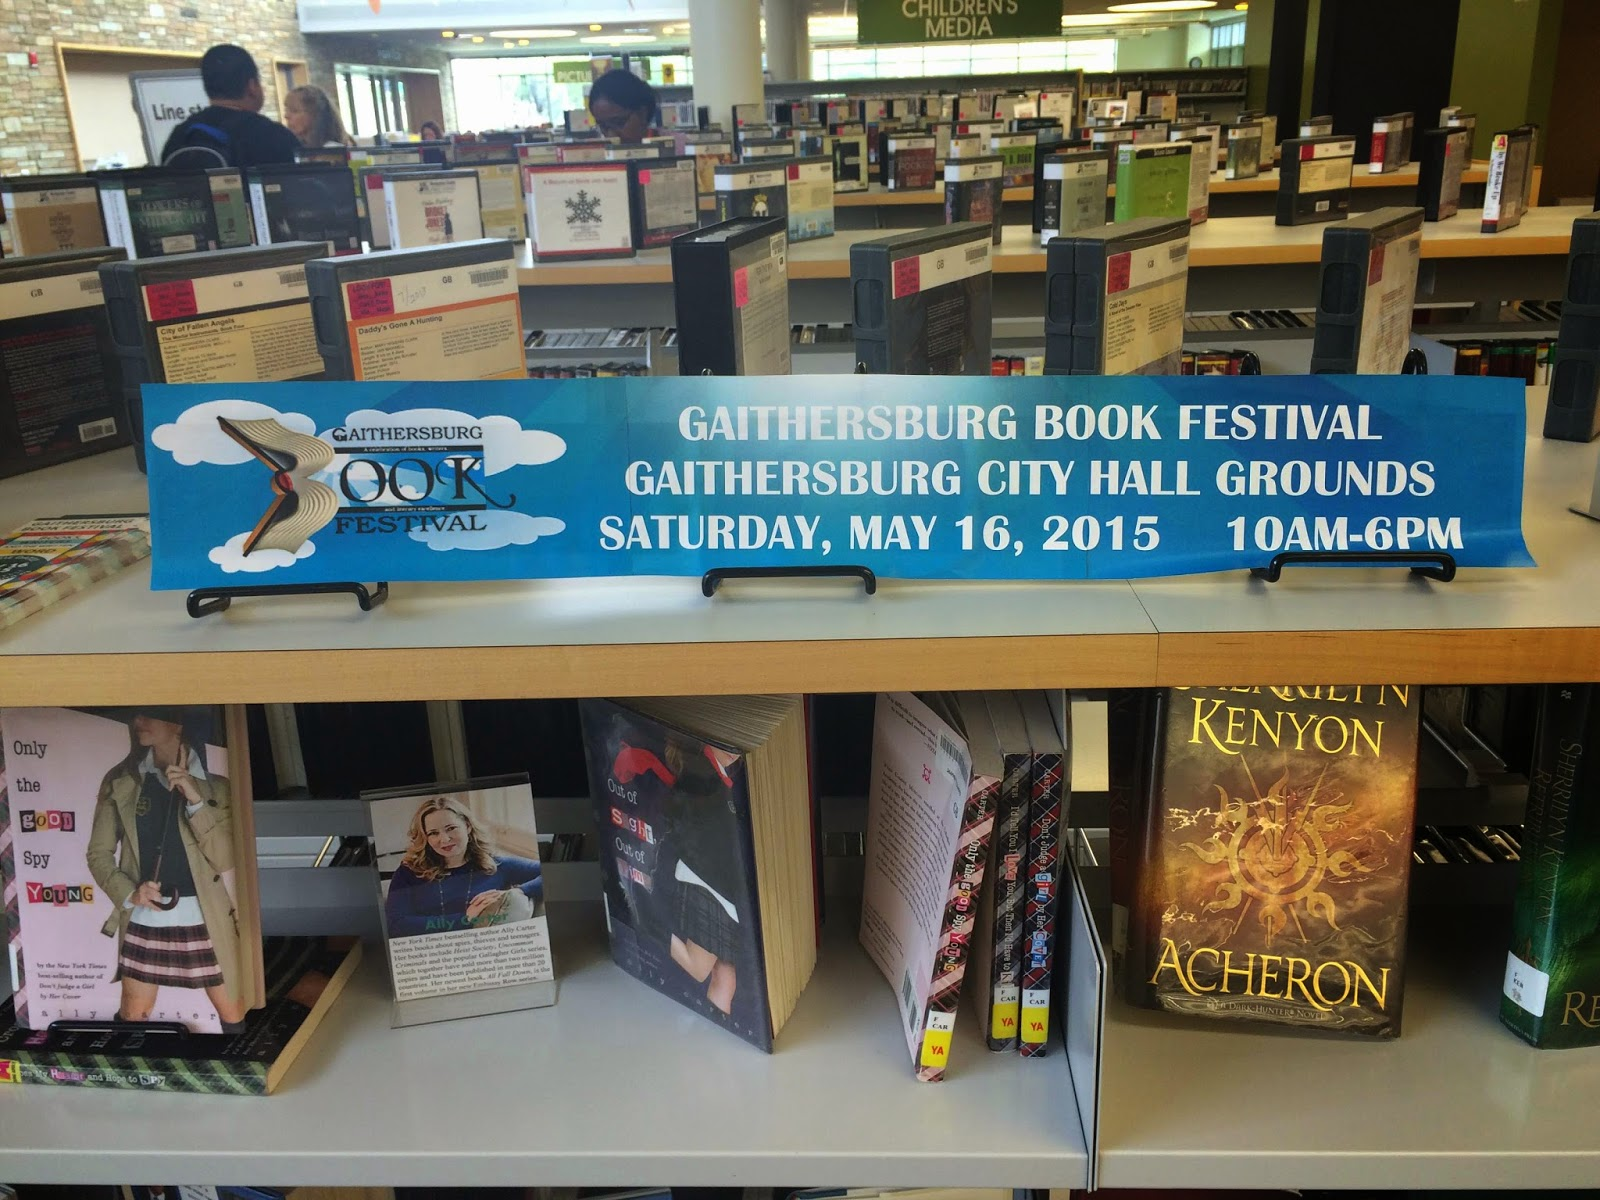 Gaithersburg Book Festival display at Gaithersburg Library